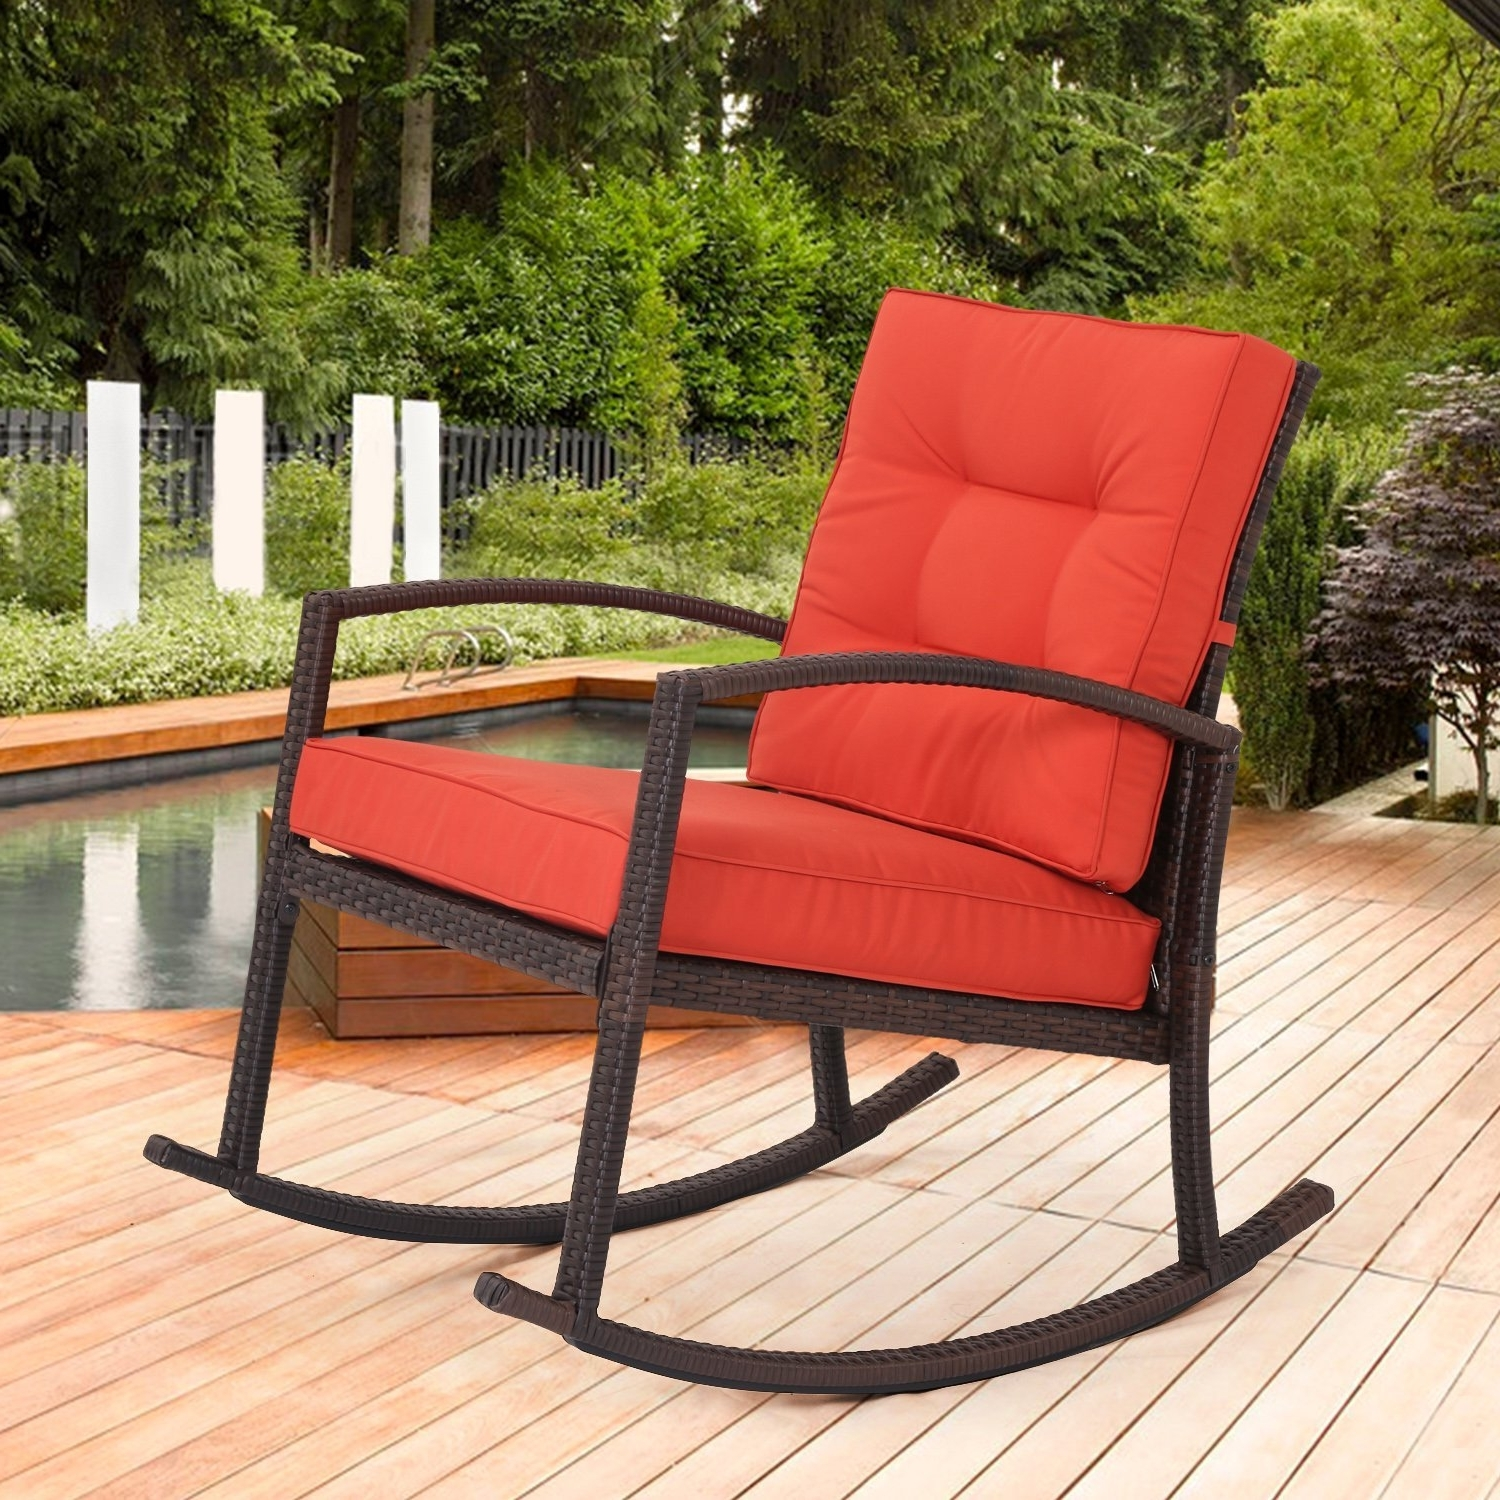 Stackable Patio Rocking Chairs Pertaining To Well Liked Patio : Patio Furniture Cushions Matching Umbrella Lovely Furniture (View 13 of 15)